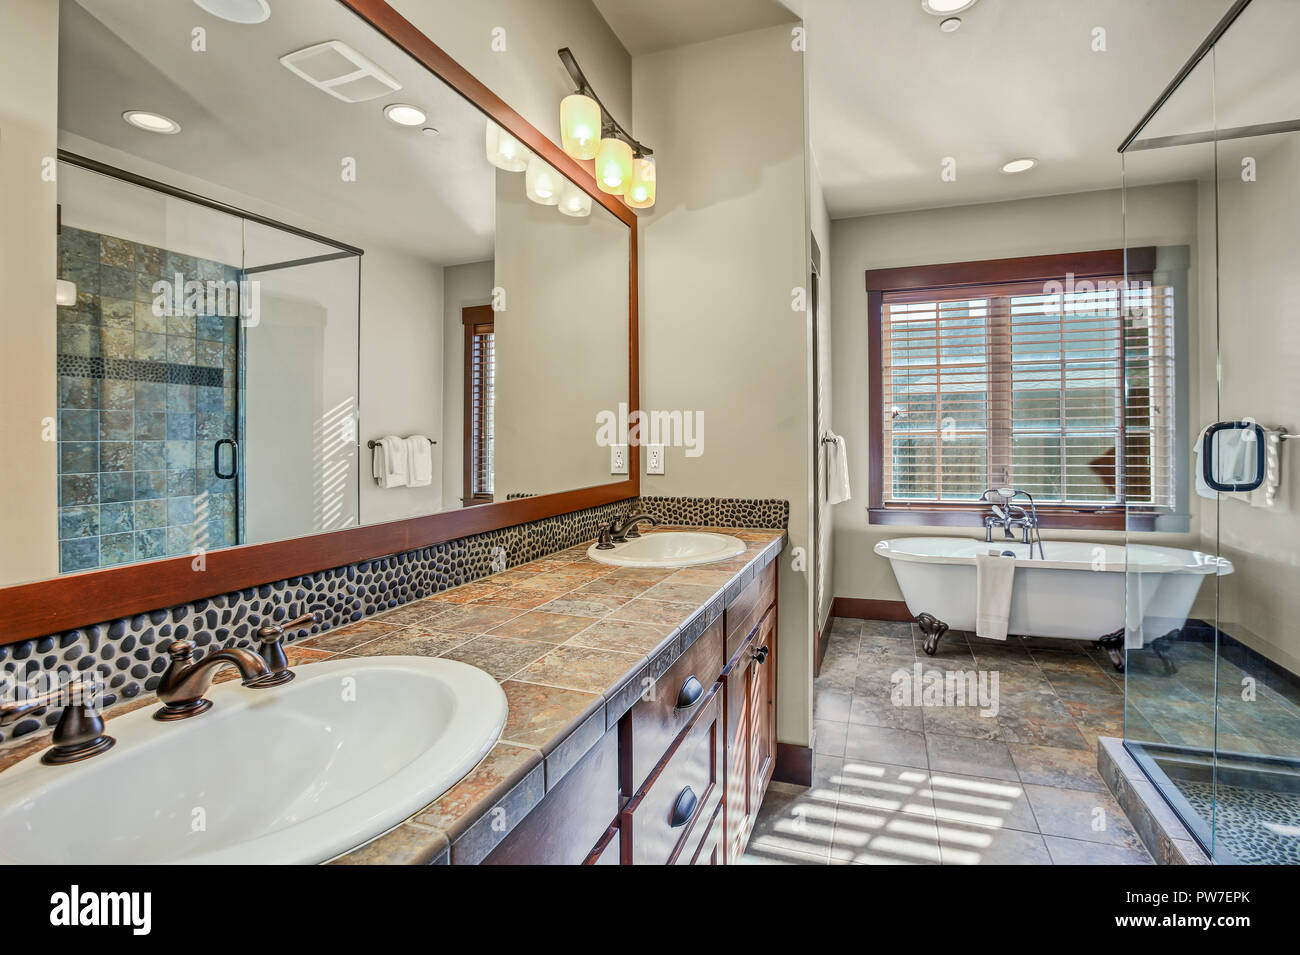 Master Bathroom With Double Sink Vanity Cabinet Walk In